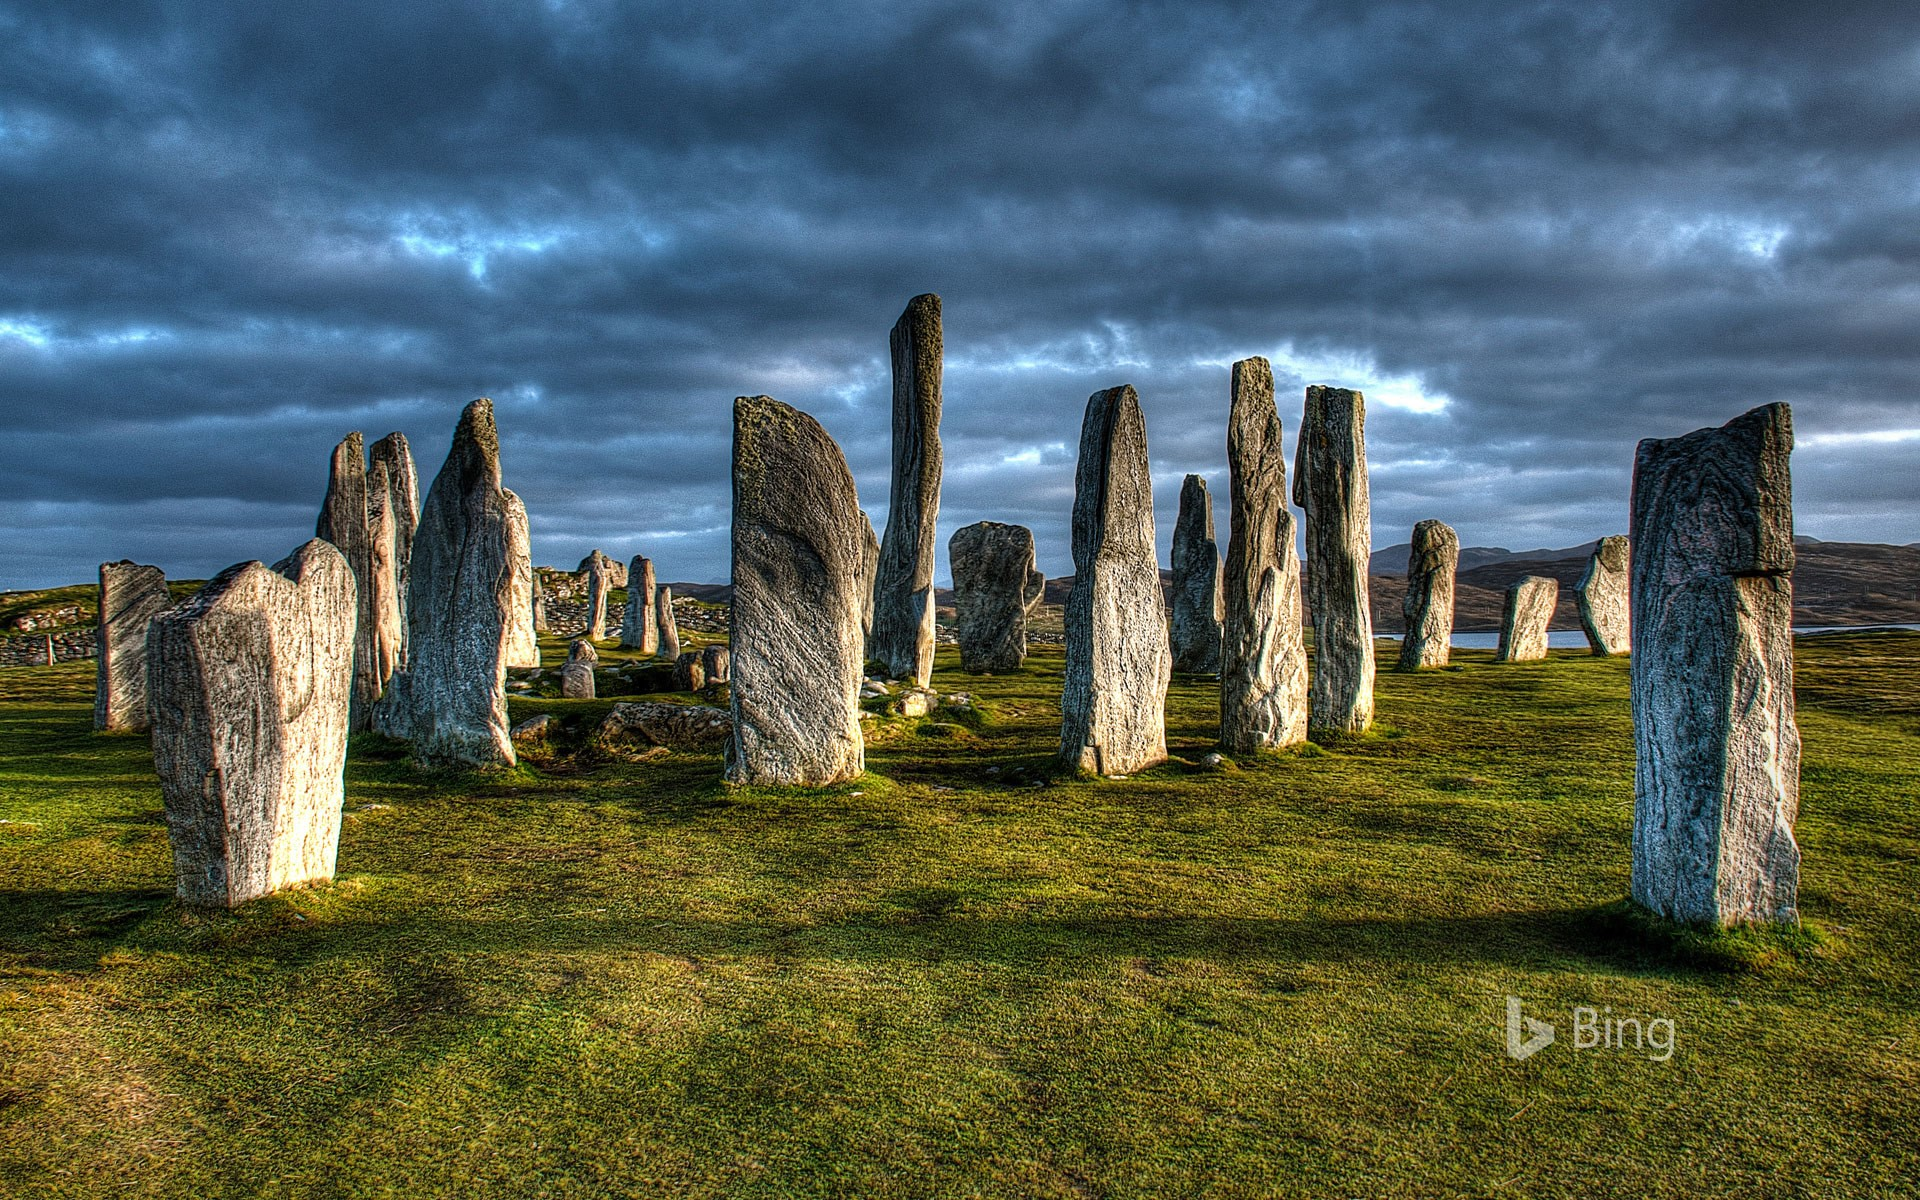 The Callanish Stones on the Isle of Lewis, Scotland